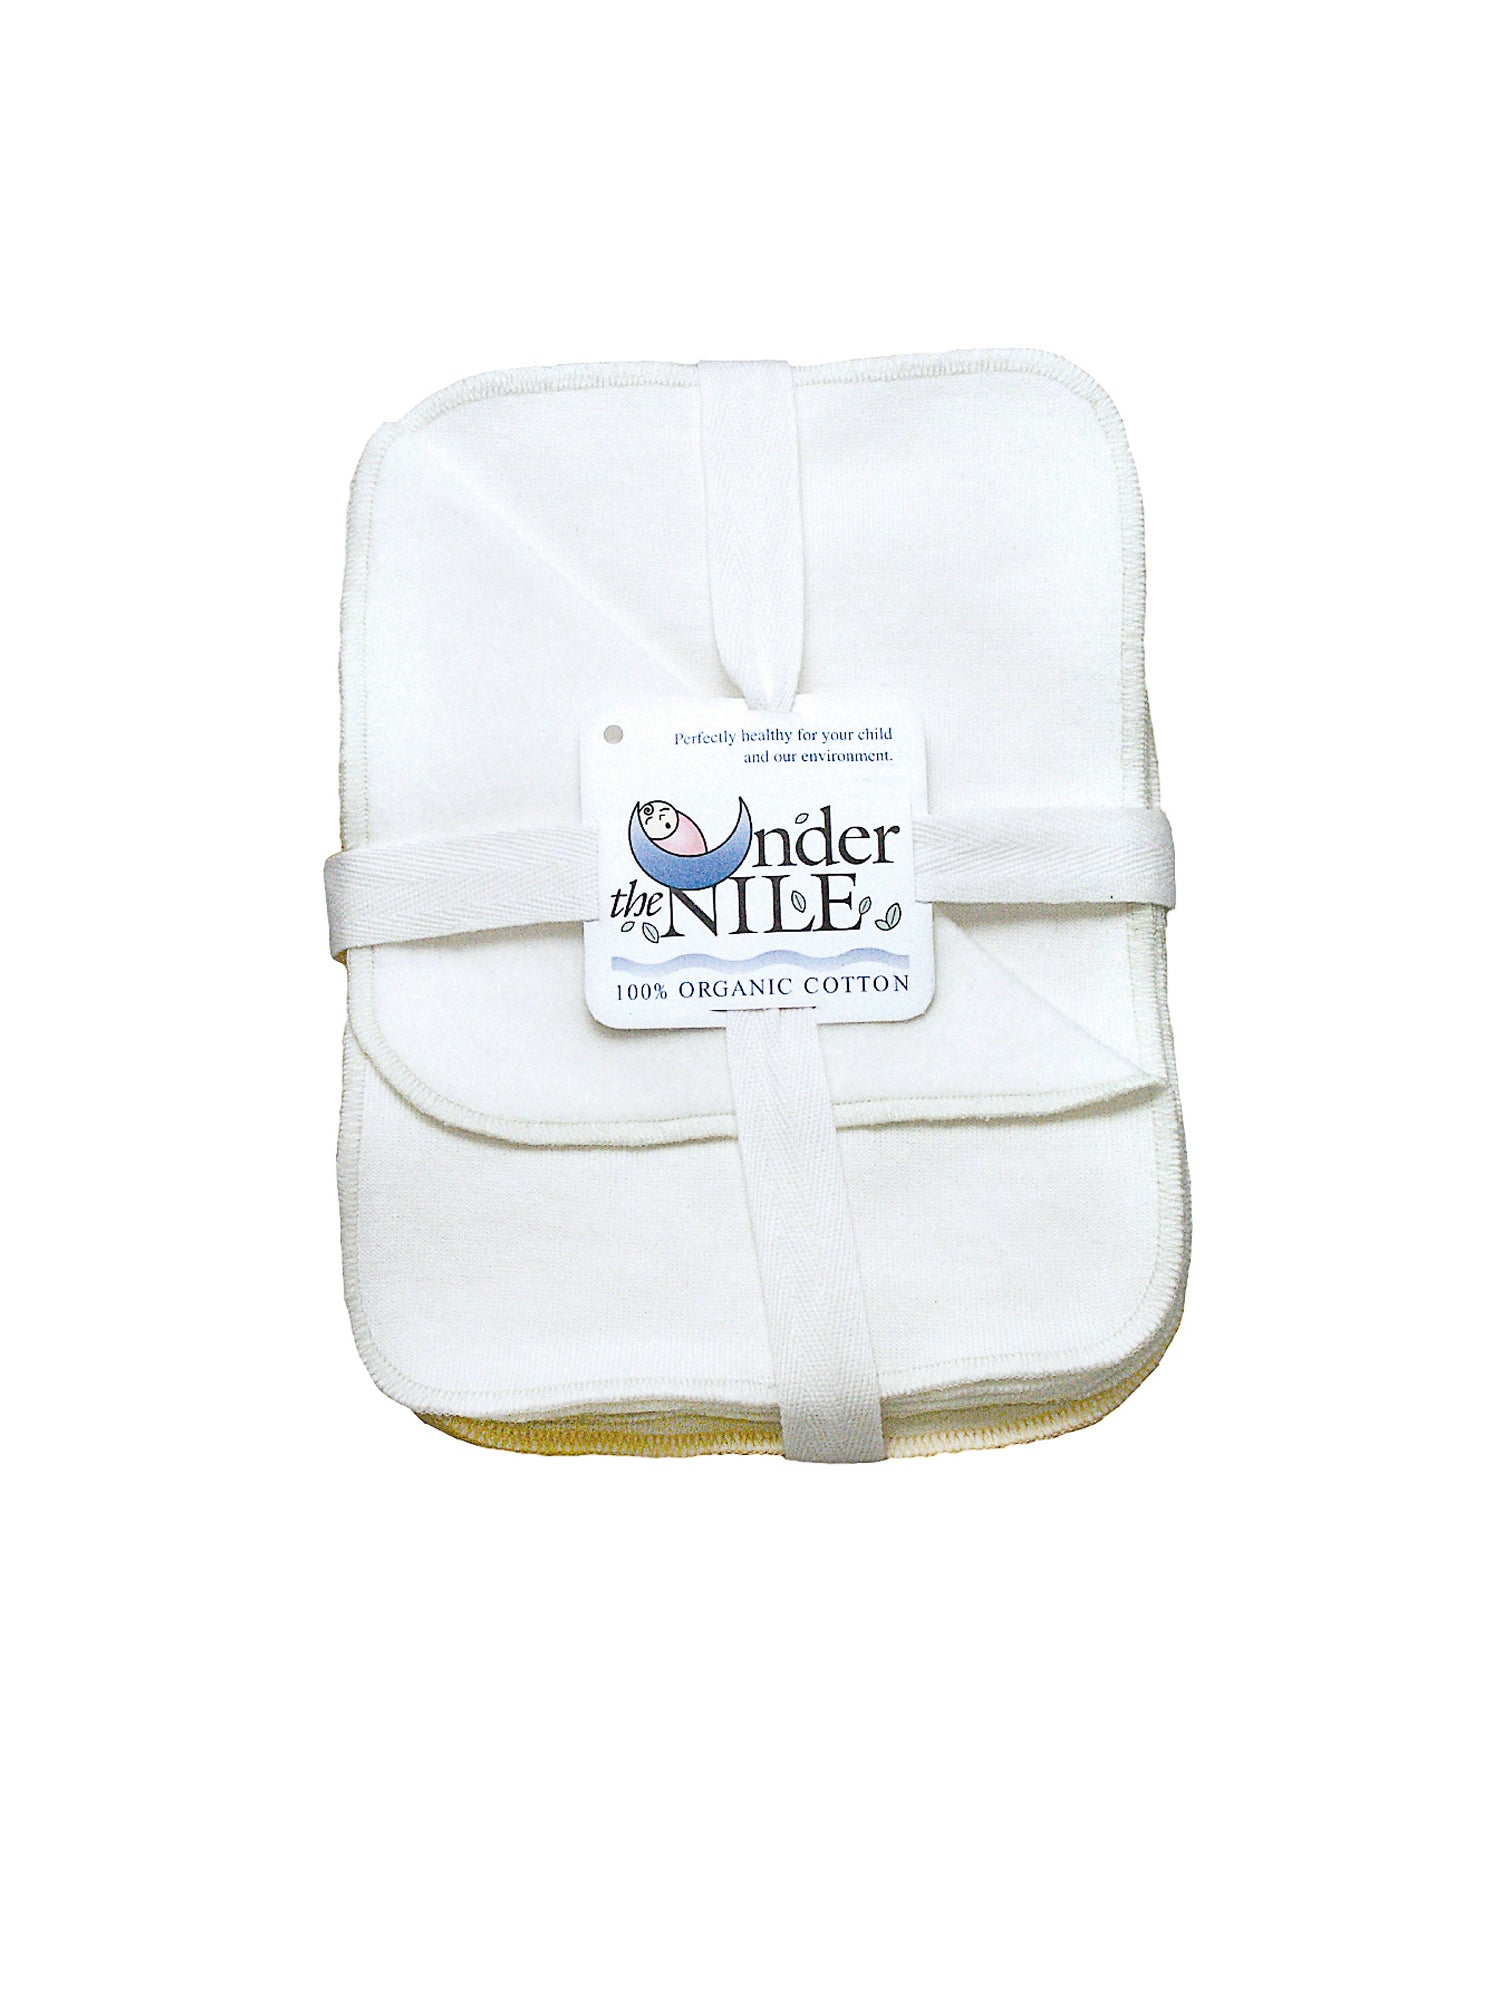 Winter White Basics Sherpa Gift Set